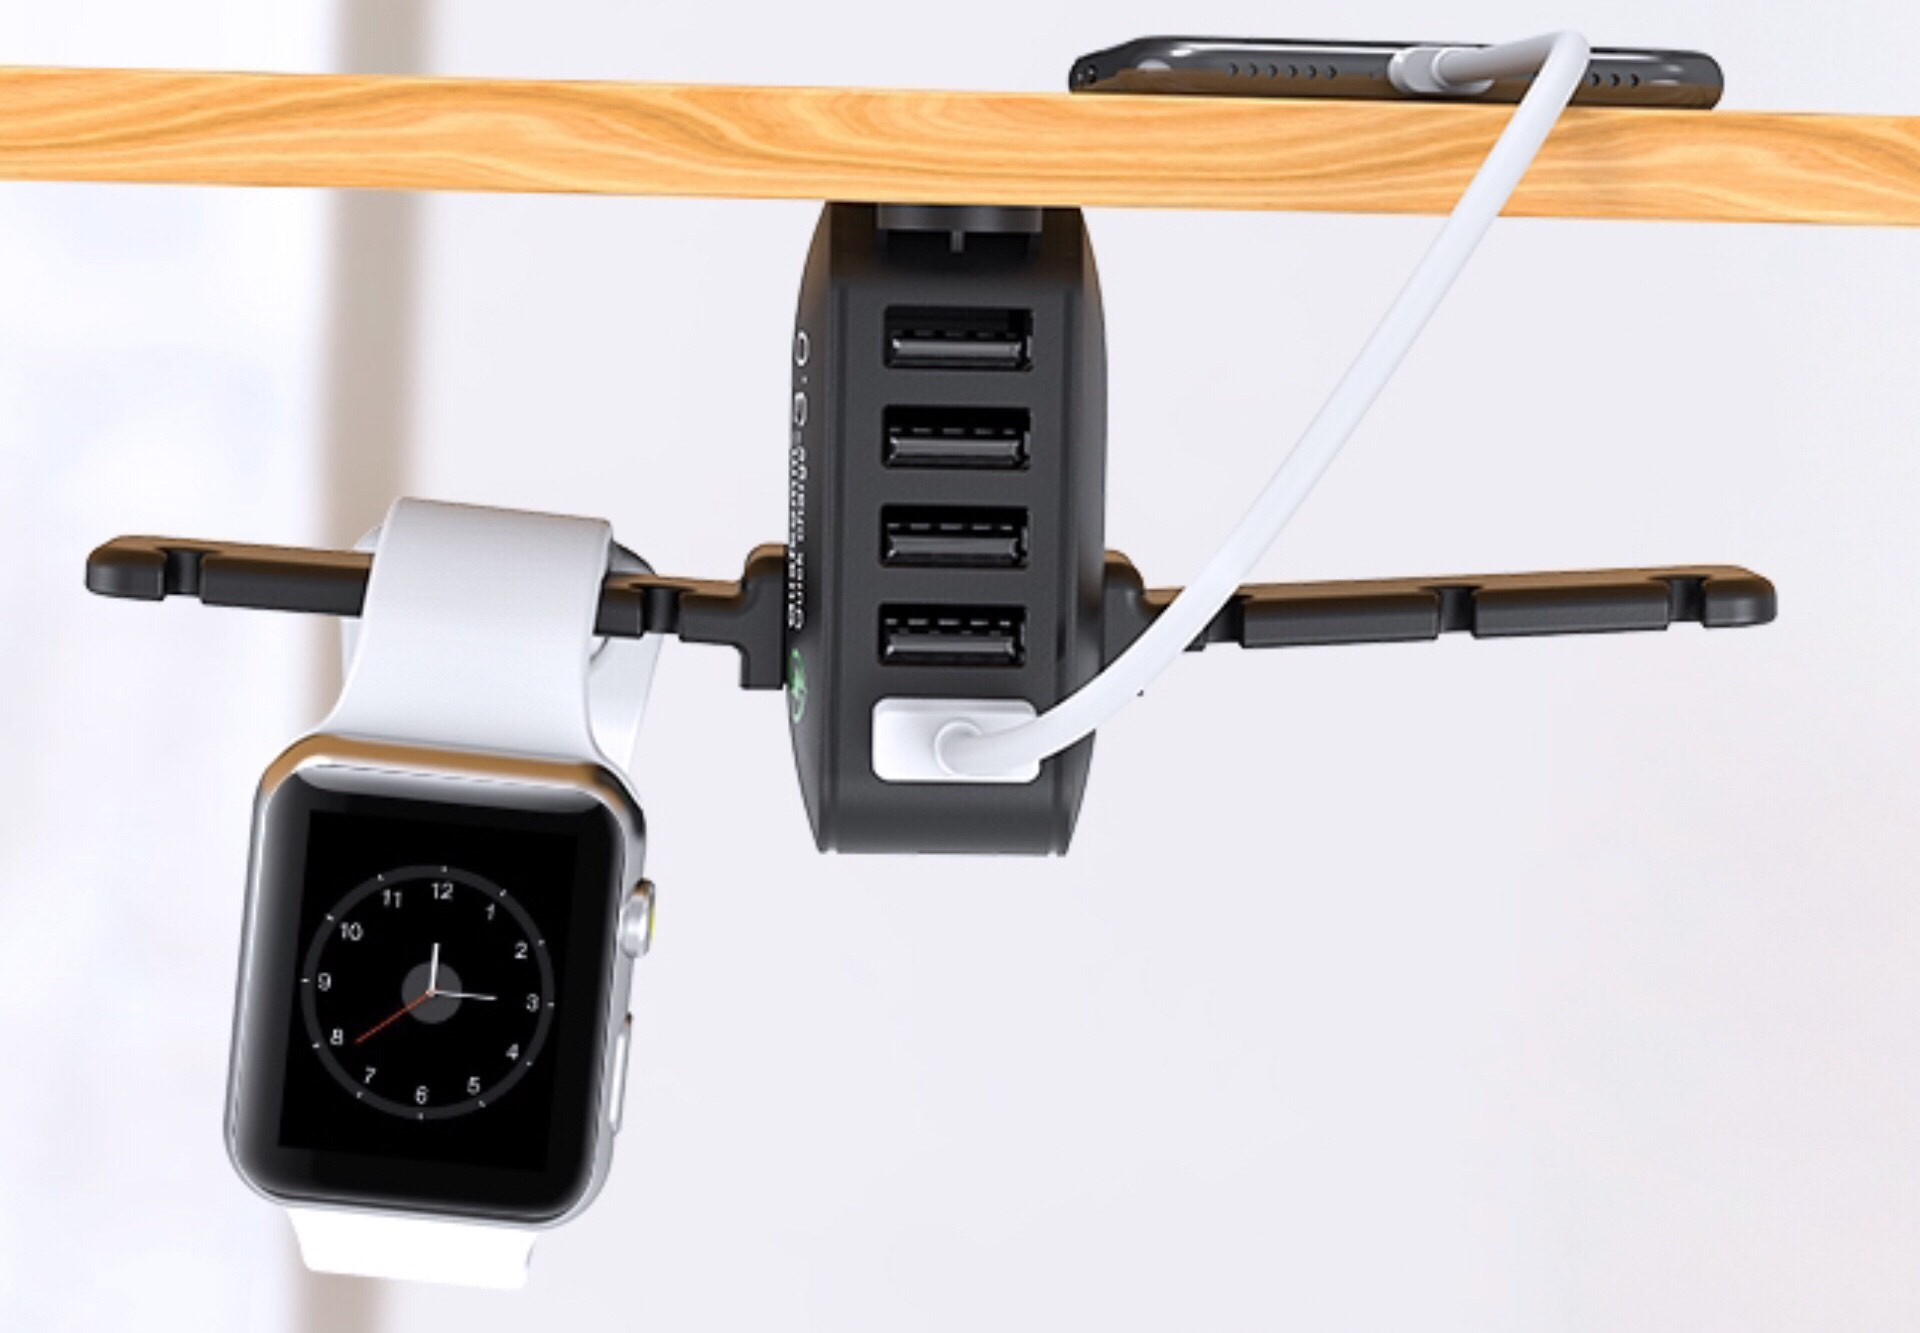 Yostyle Under-Desk Headphone + Apple Watch Stand with USB Charger